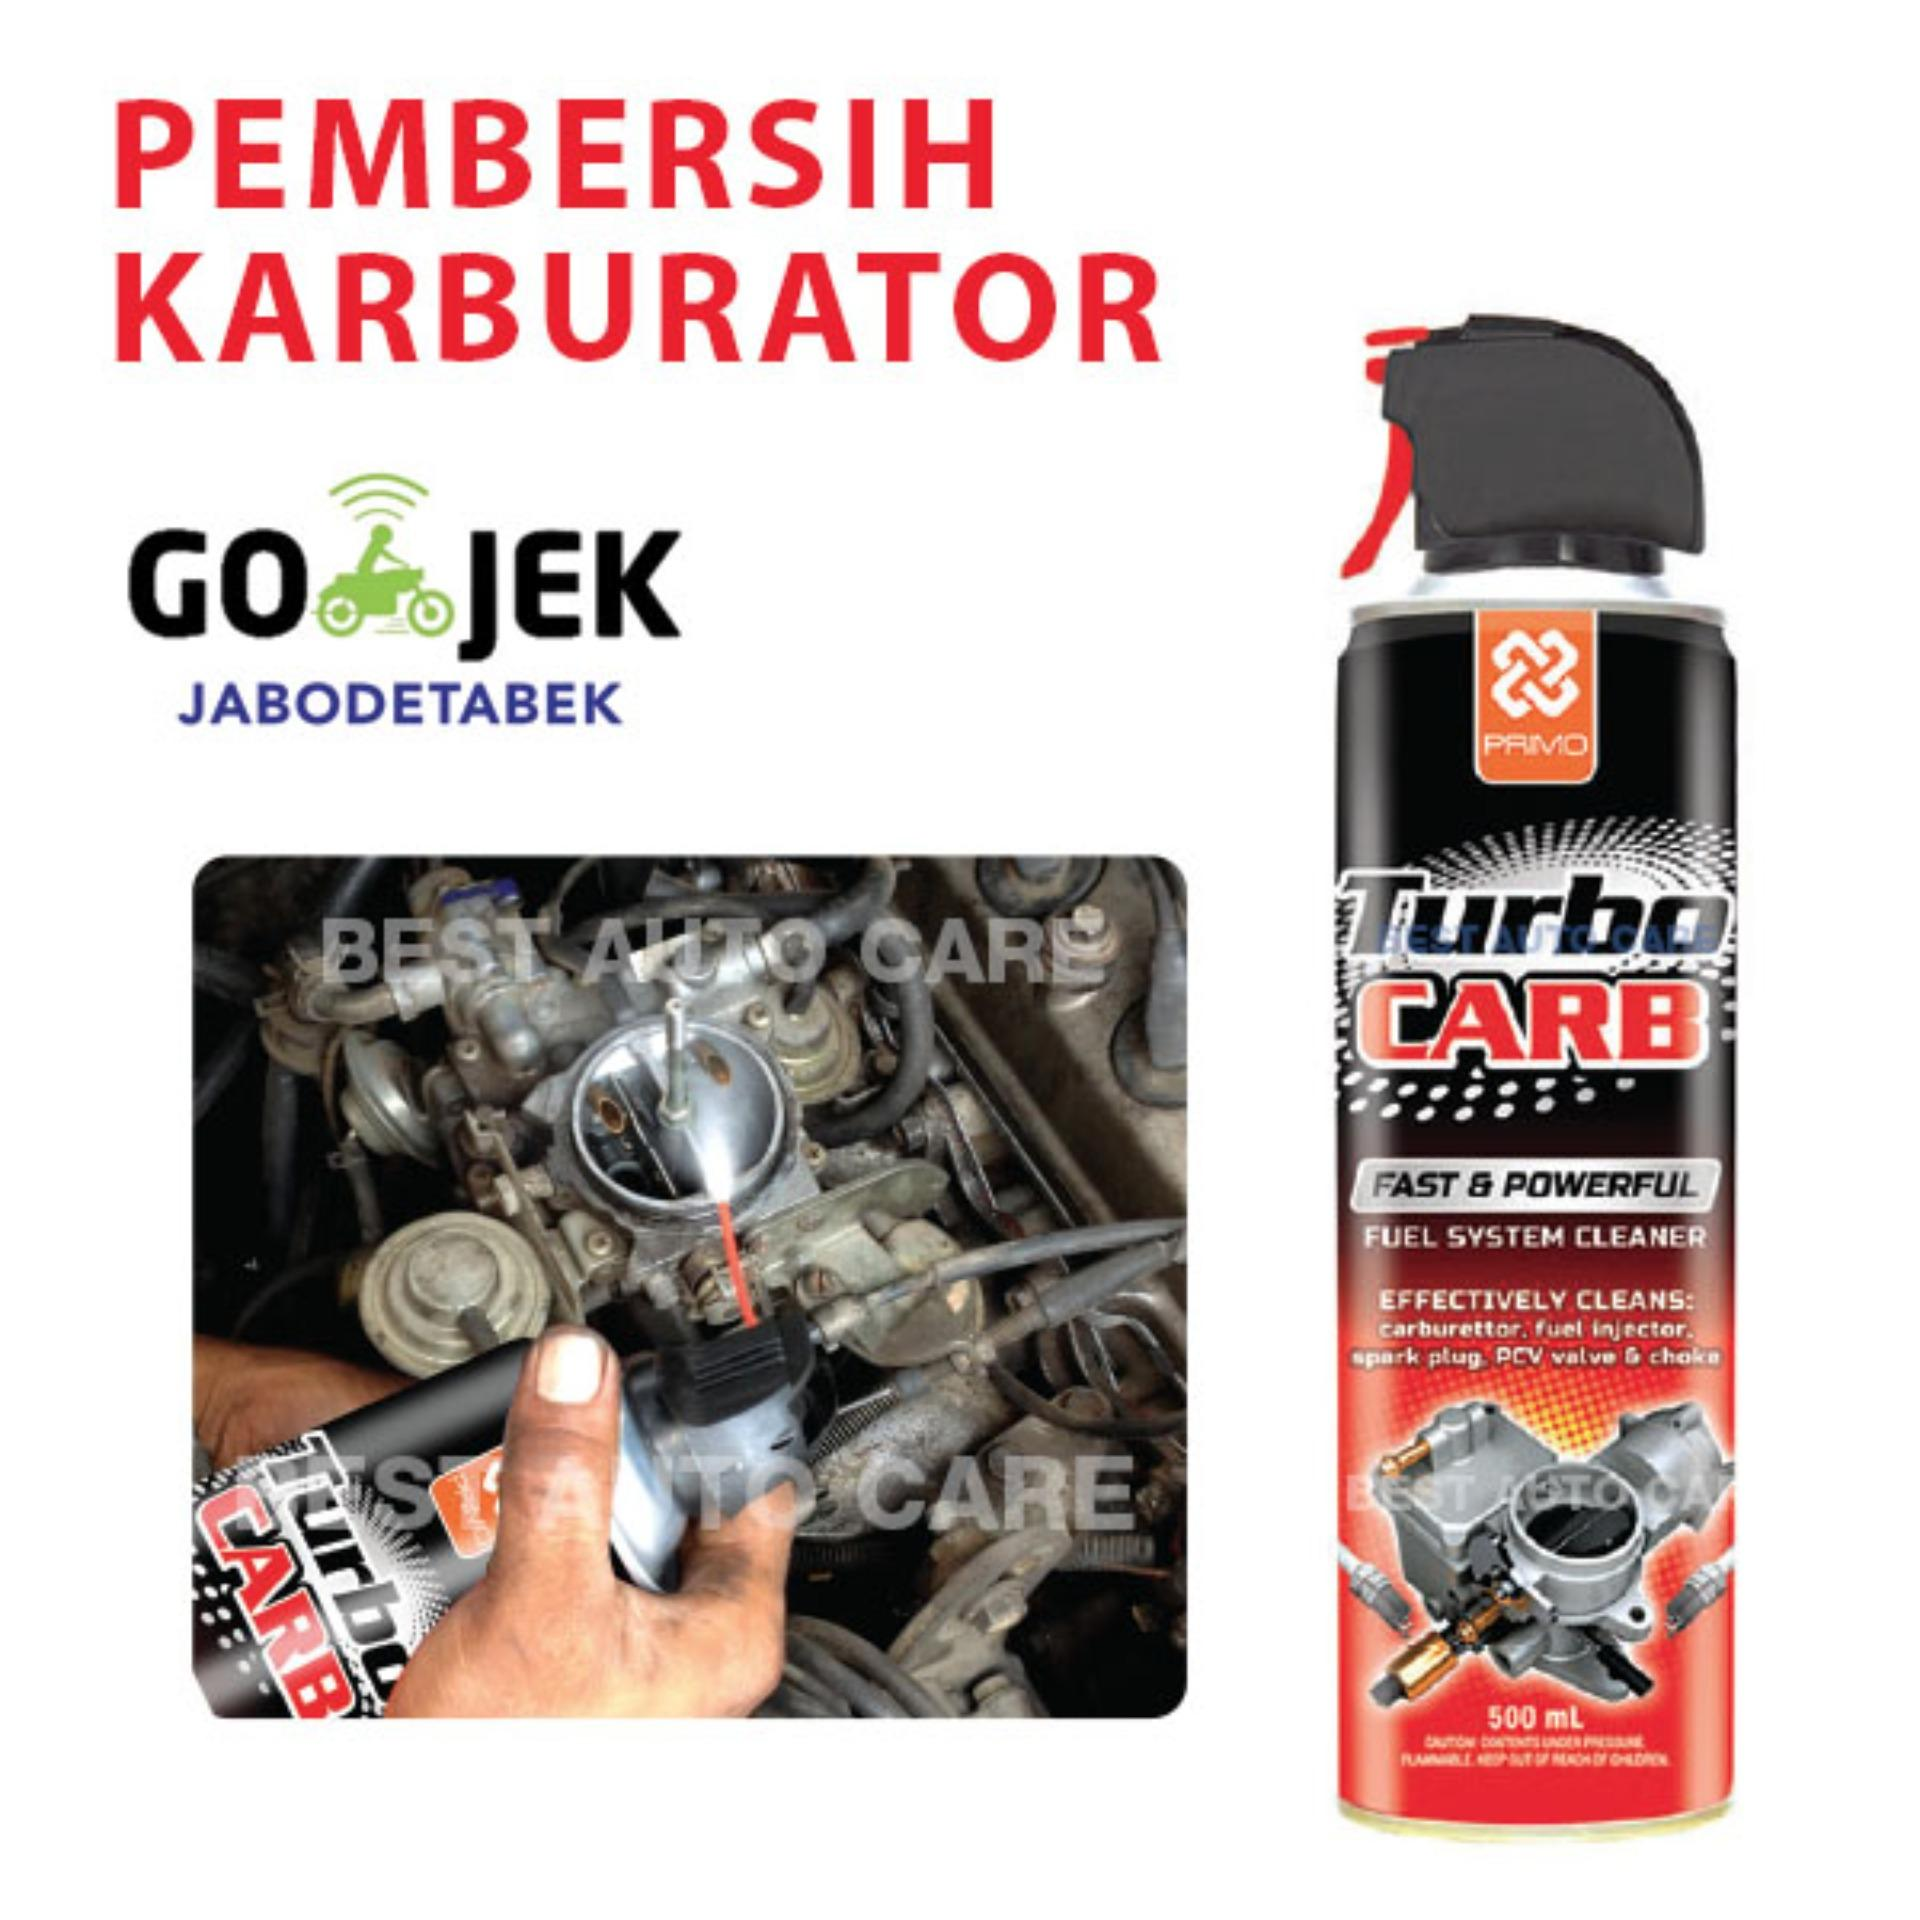 Primo Turbo Carb Carburator Cleaner Pembersih Karburator - 500 mL